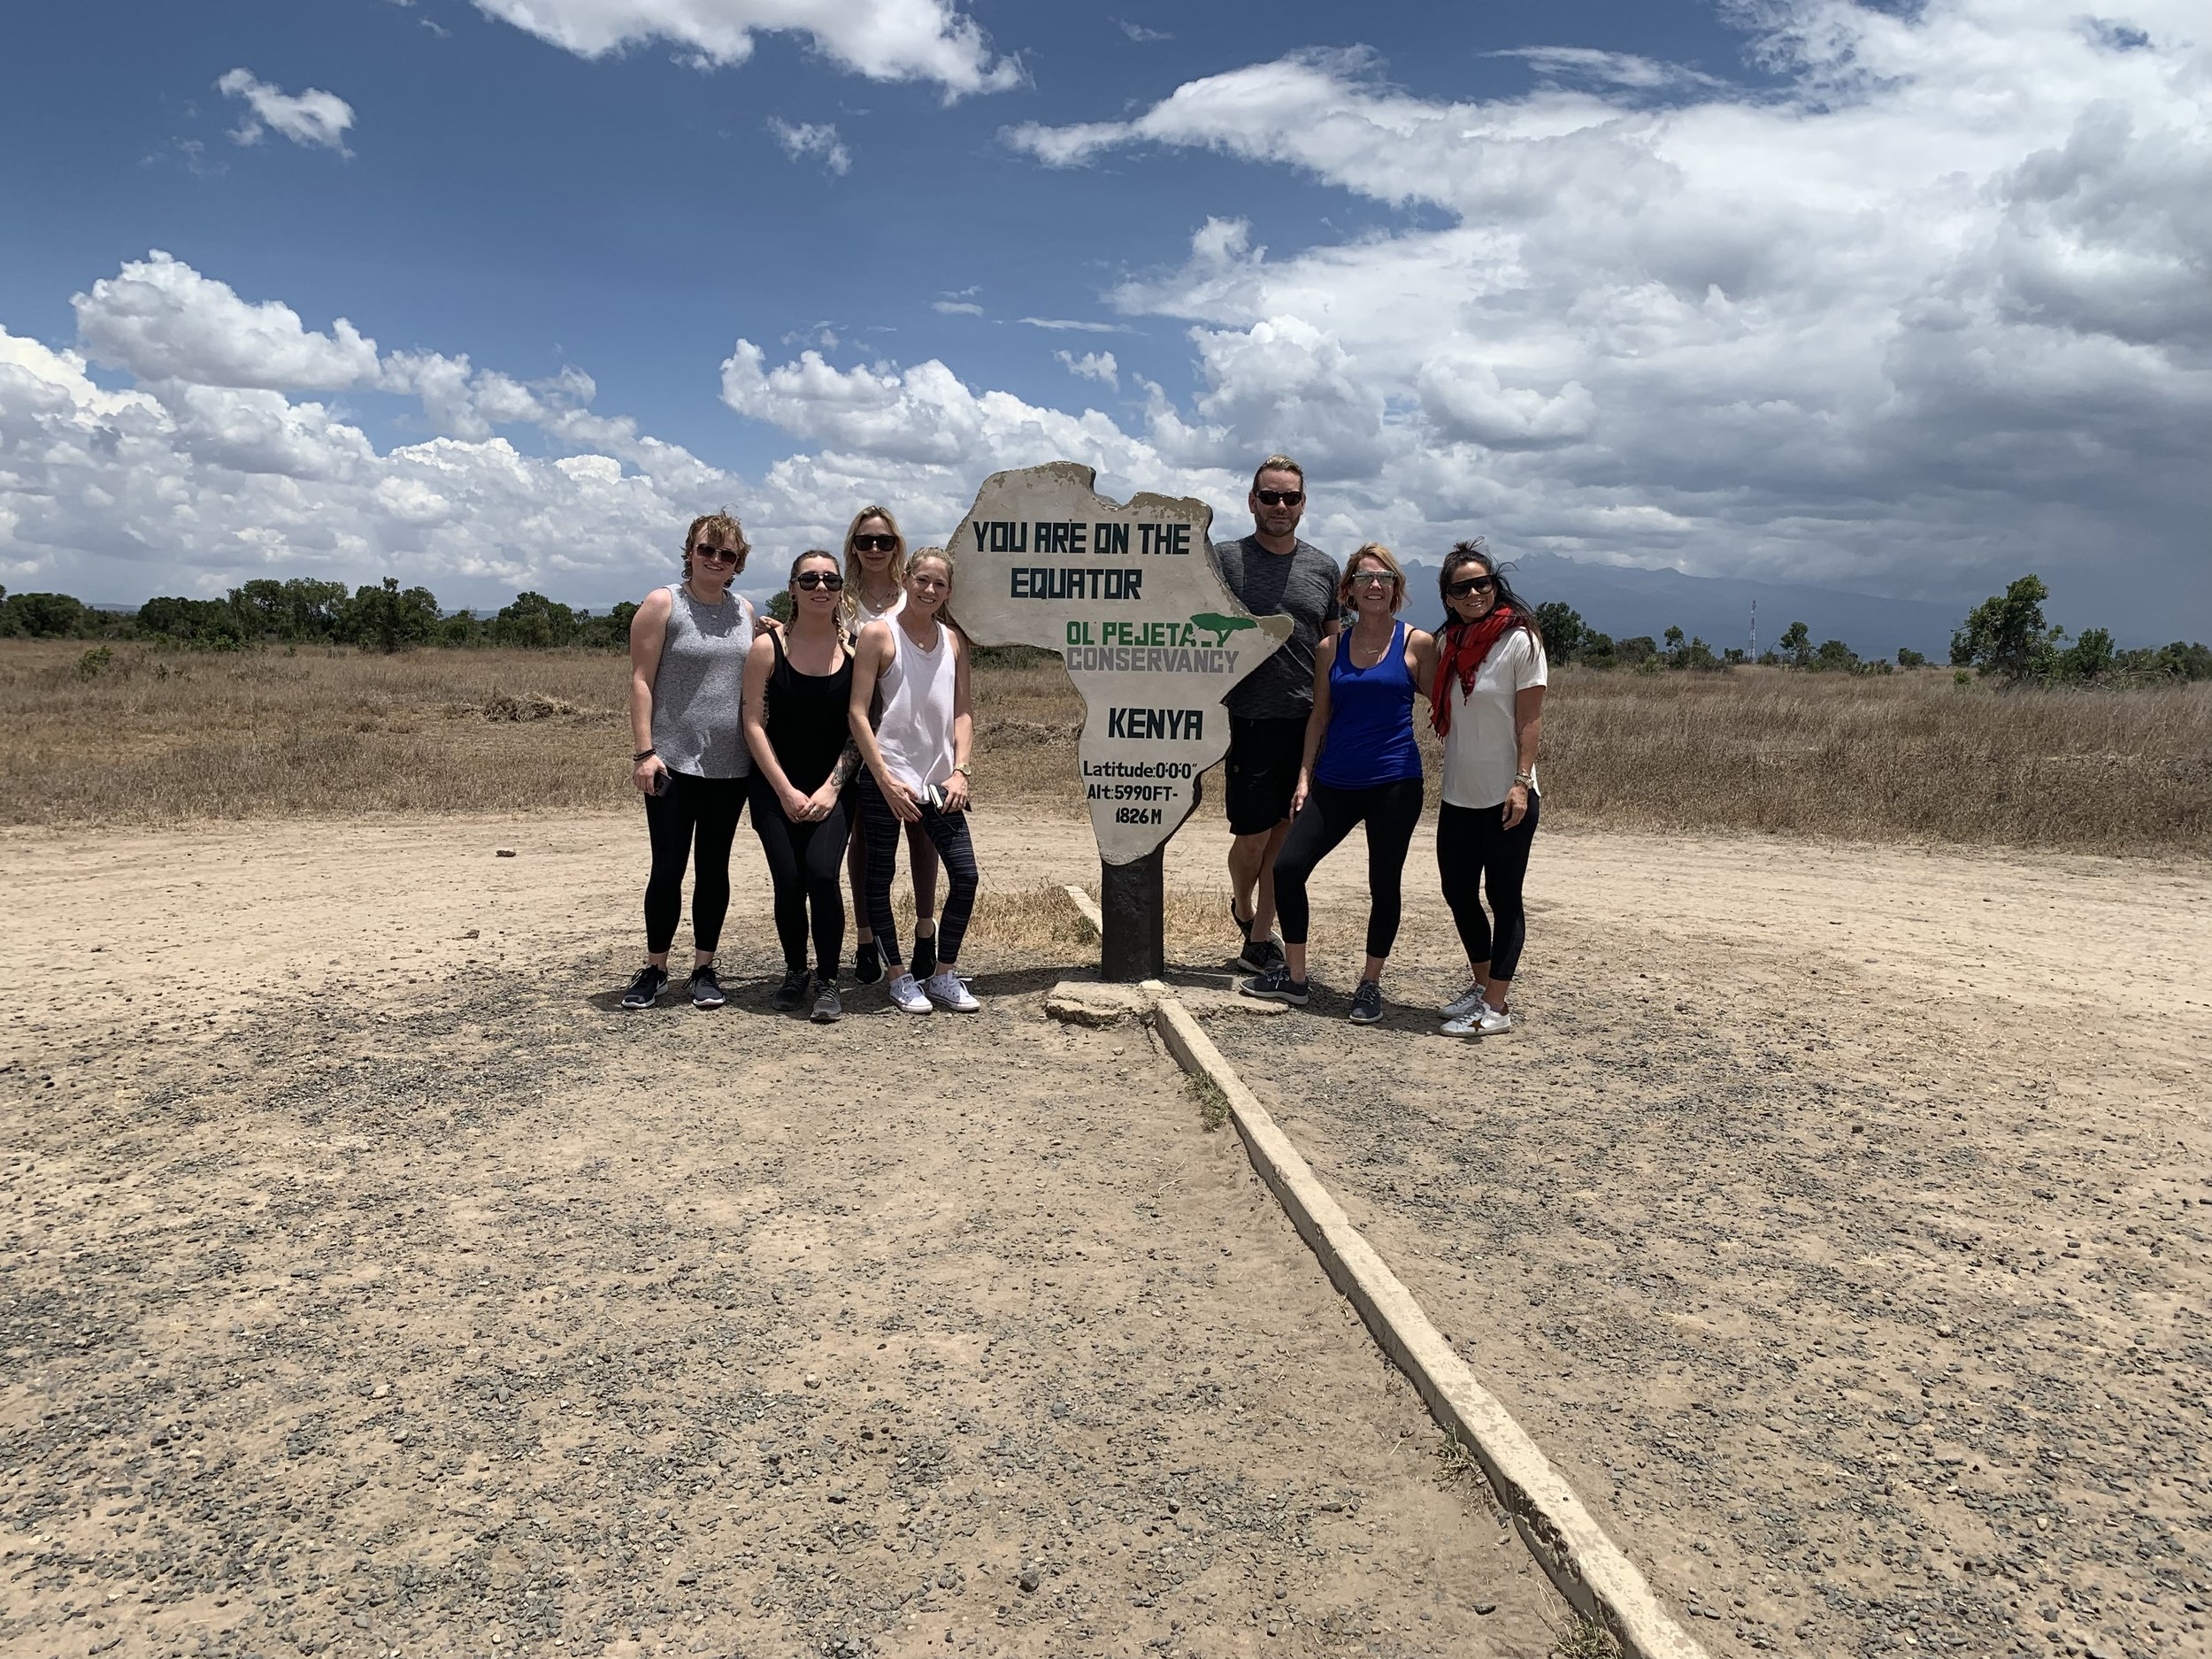 The whole gang at the equator. This photo was taken moments after arriving on the conservancy.